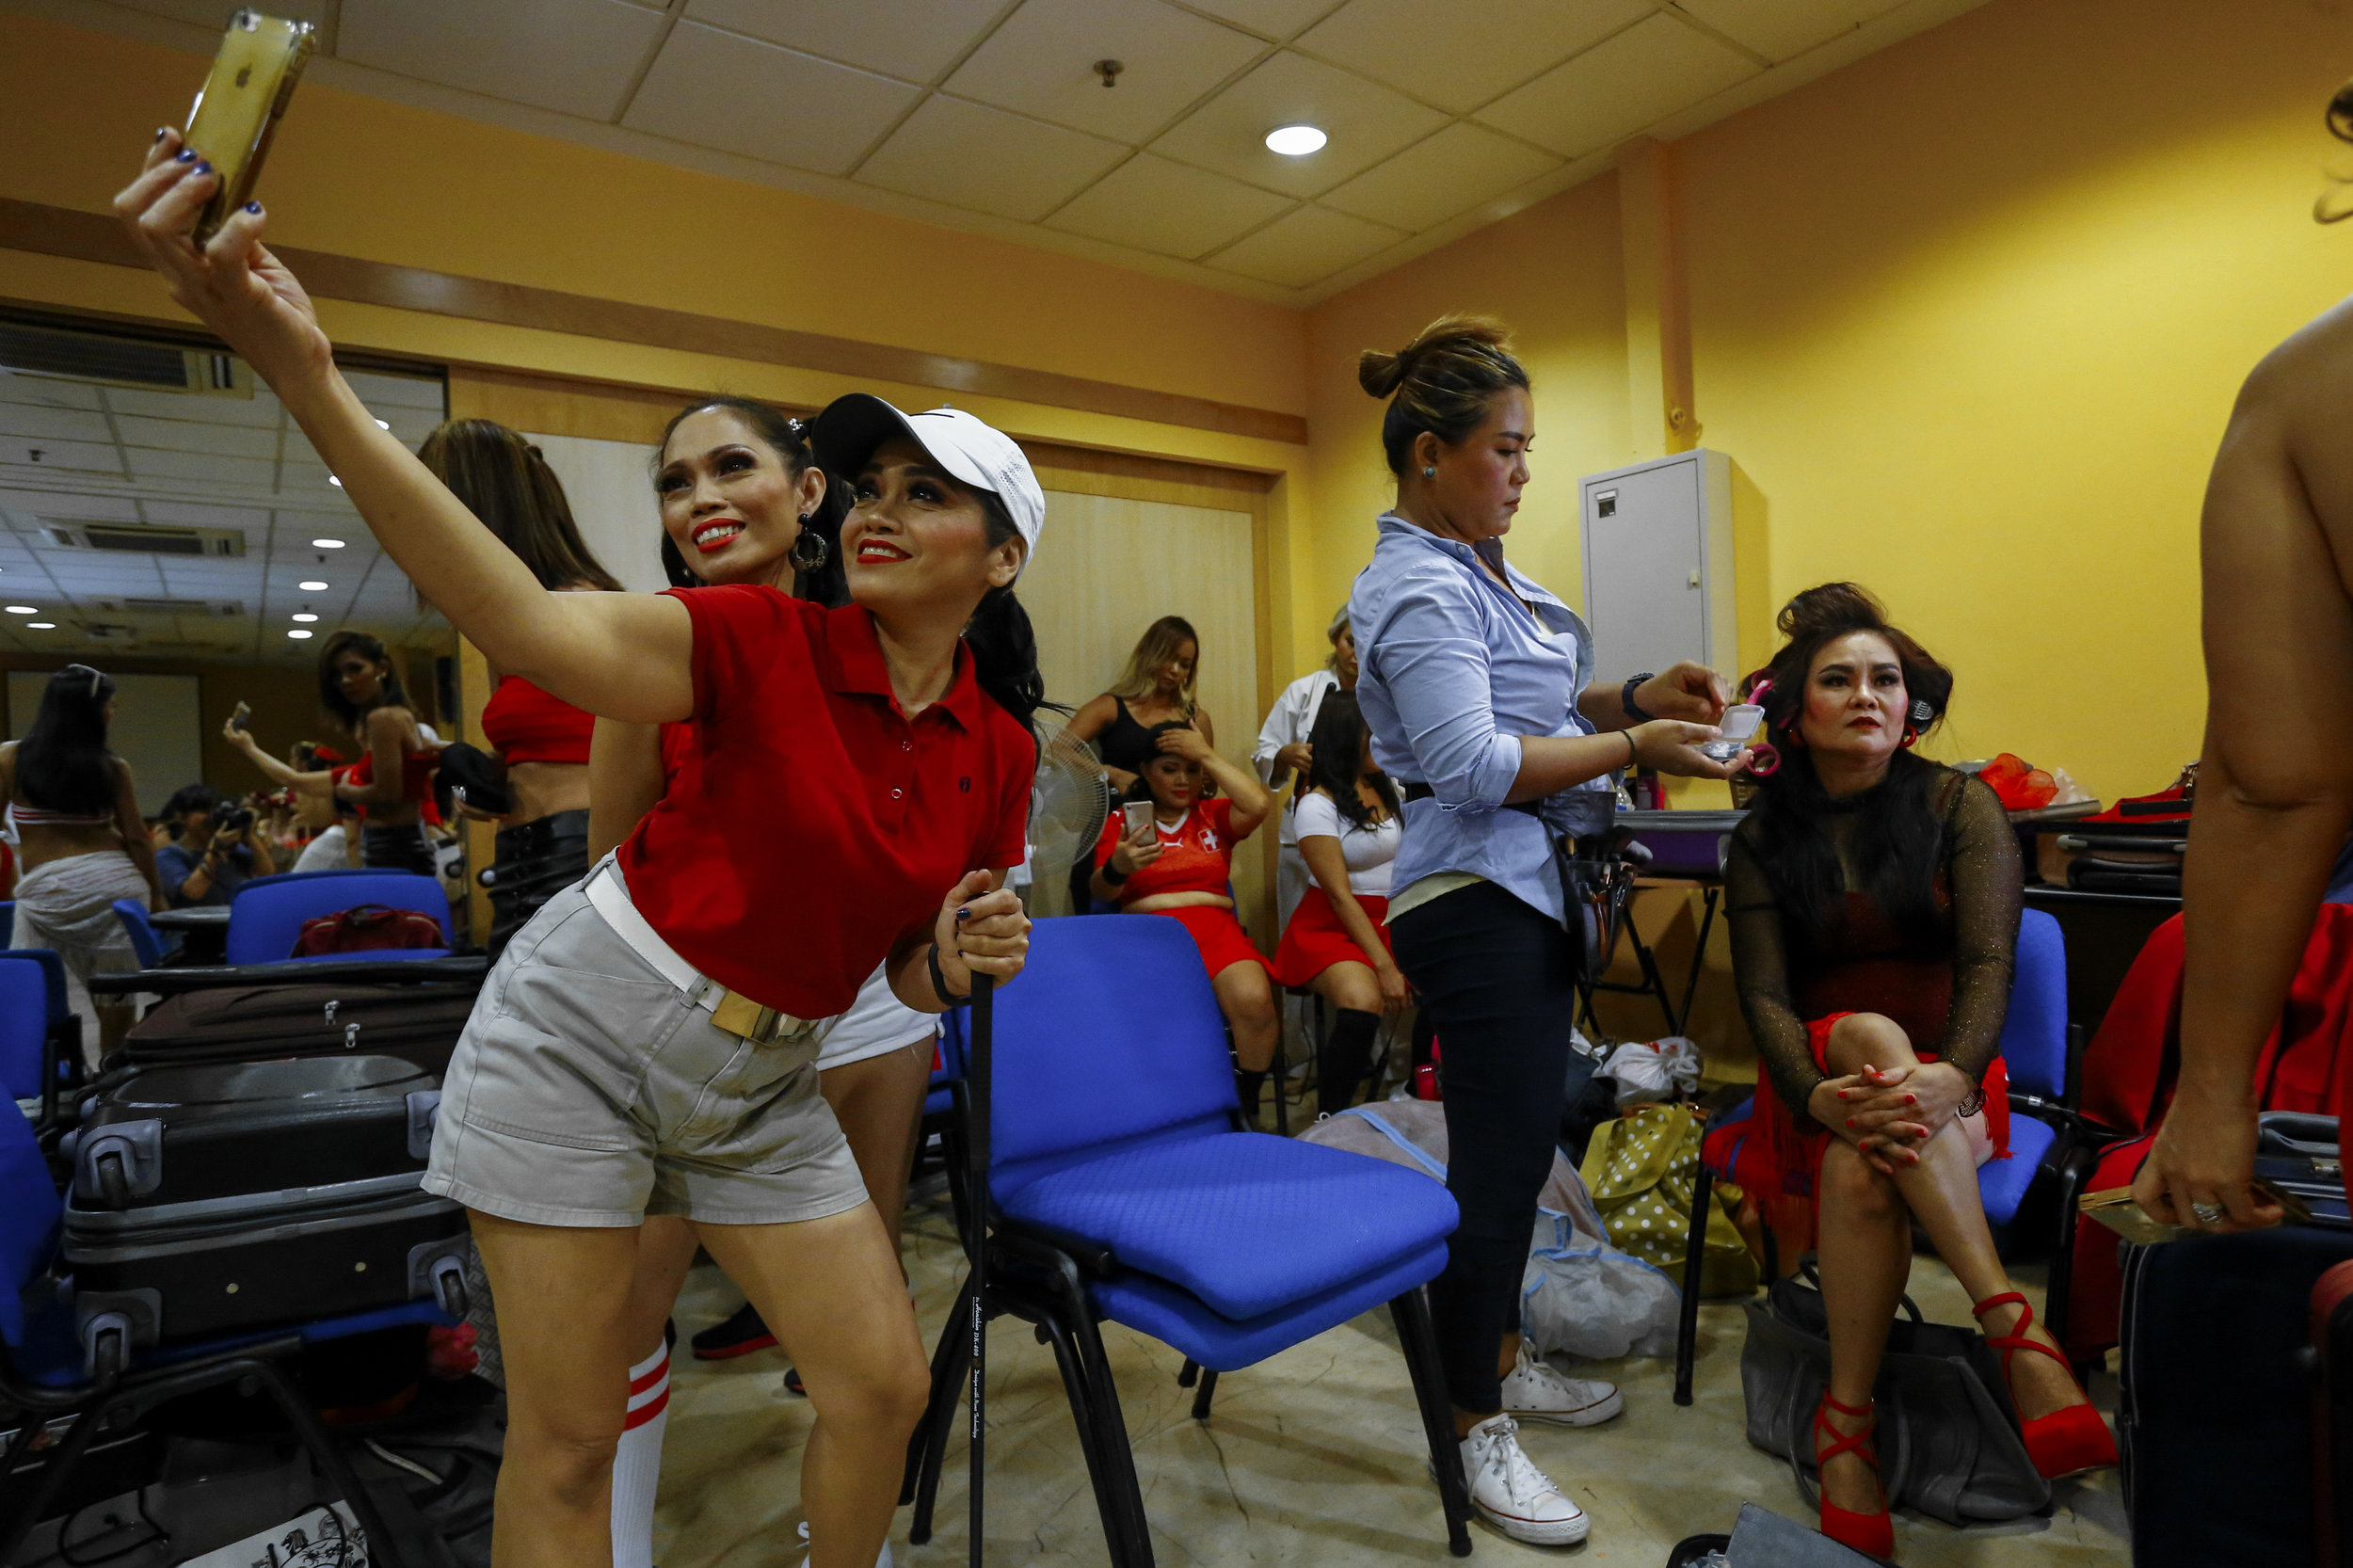 Contestants prepare backstage at Rampstar 2018, a beauty pageant organised largely for Filipino domestic helpers in Singapore, July 29, 2018. REUTERS/Feline Lim